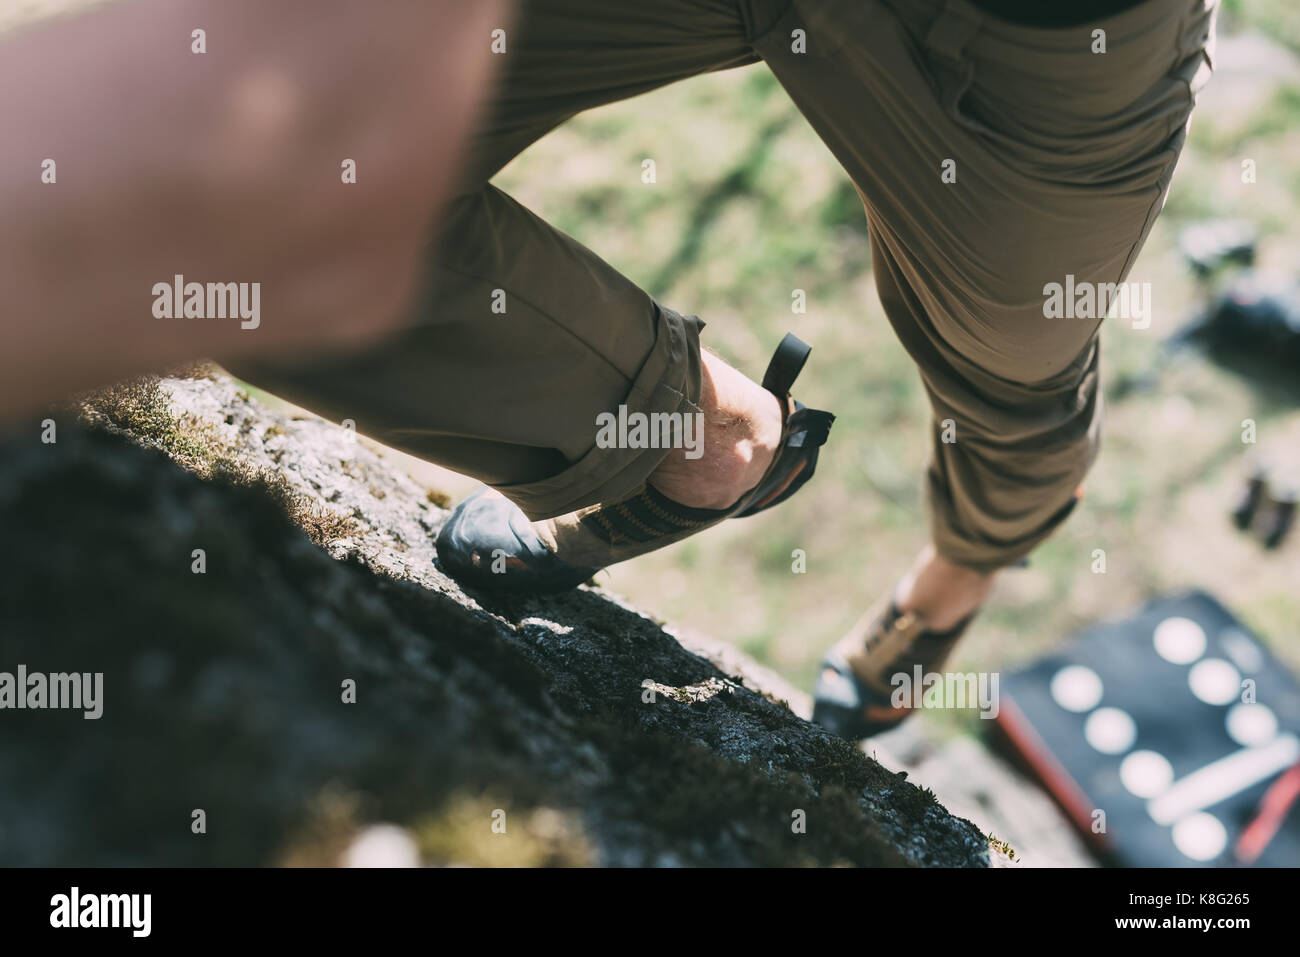 Waist down view of male boulderer climbing up boulder, Lombardy, Italy - Stock Image